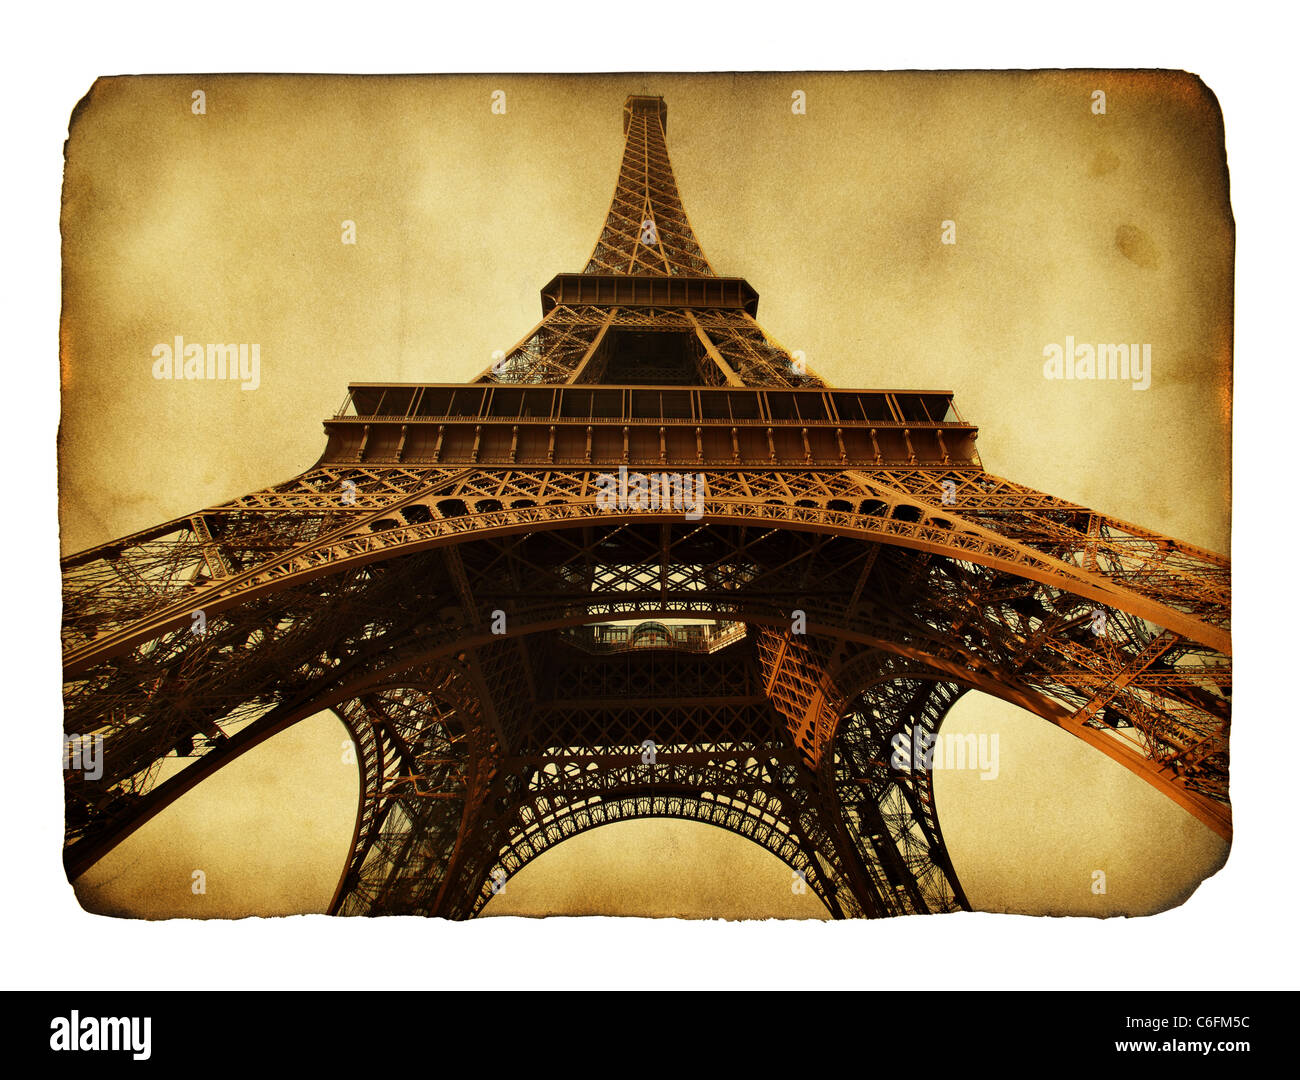 Imitation of vntage postcard with Eiffel tower Stock Photo